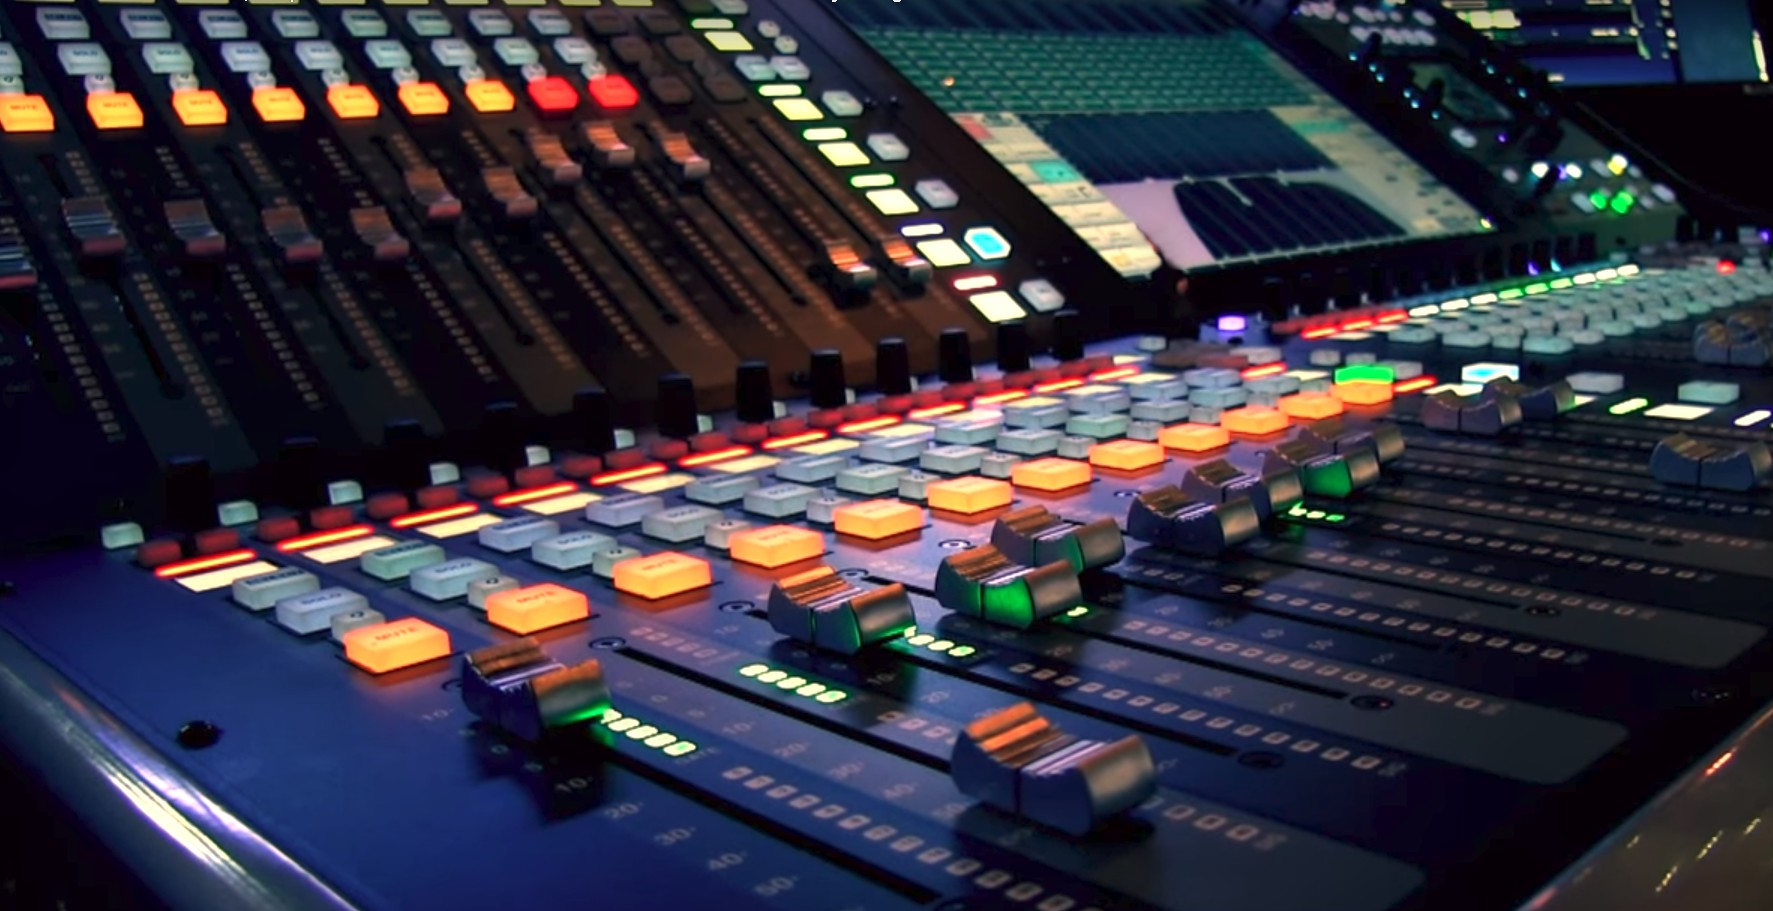 audio visual event production digital mixing board